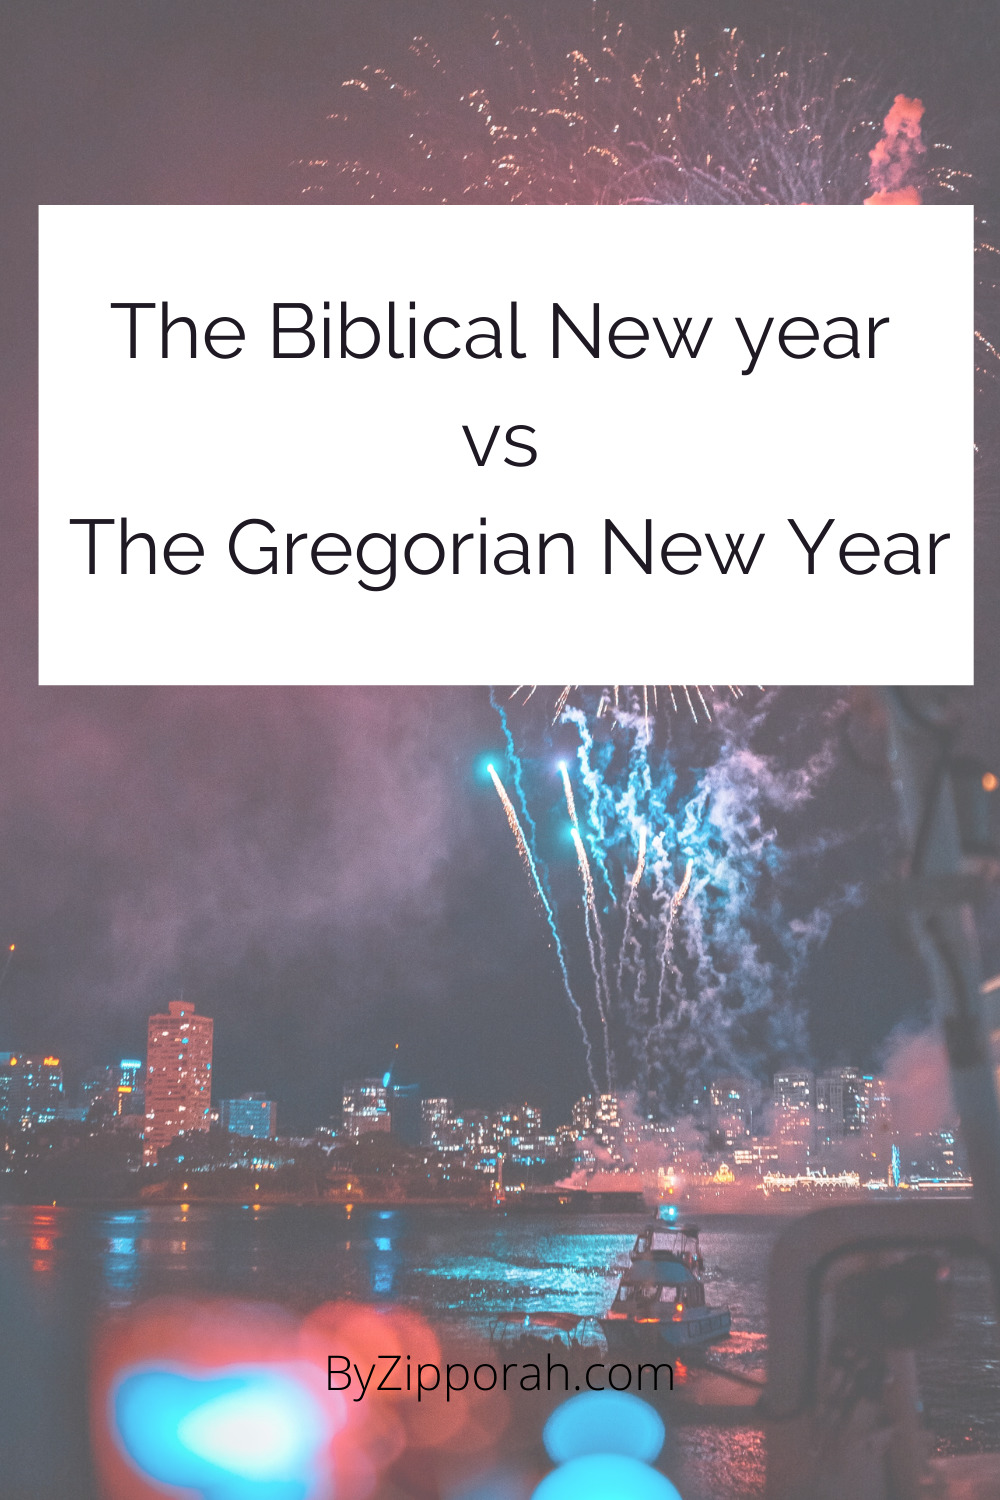 The Biblical New Year vs The Gregorian New Year